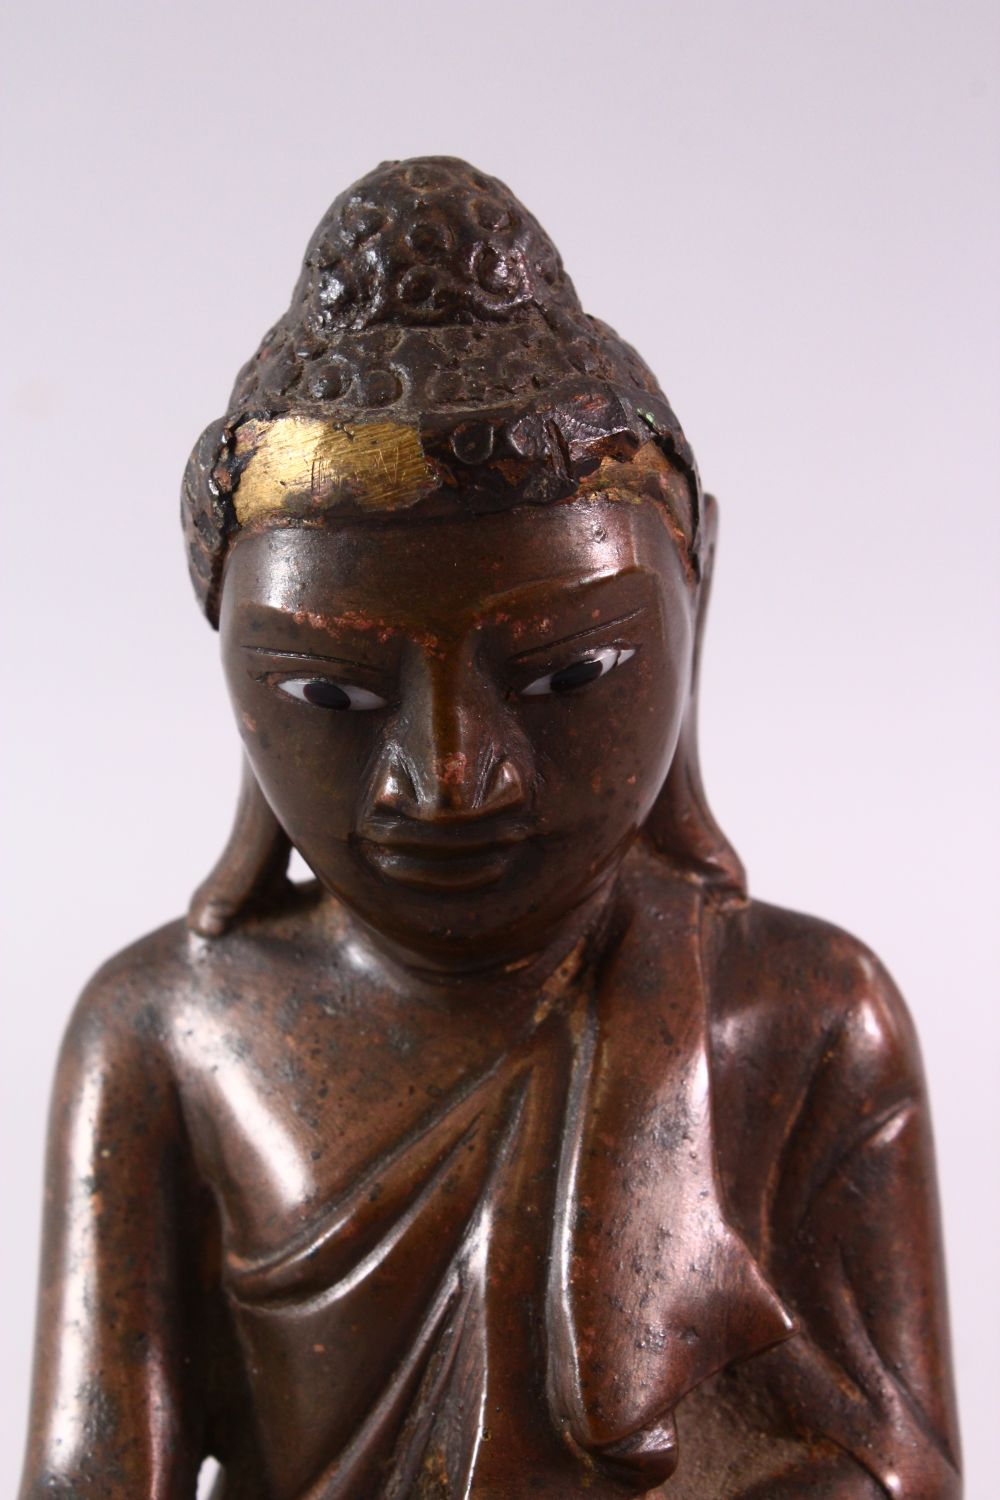 A BRONZE BUDDHA with glass inset eyes, 16cm high. - Image 2 of 6